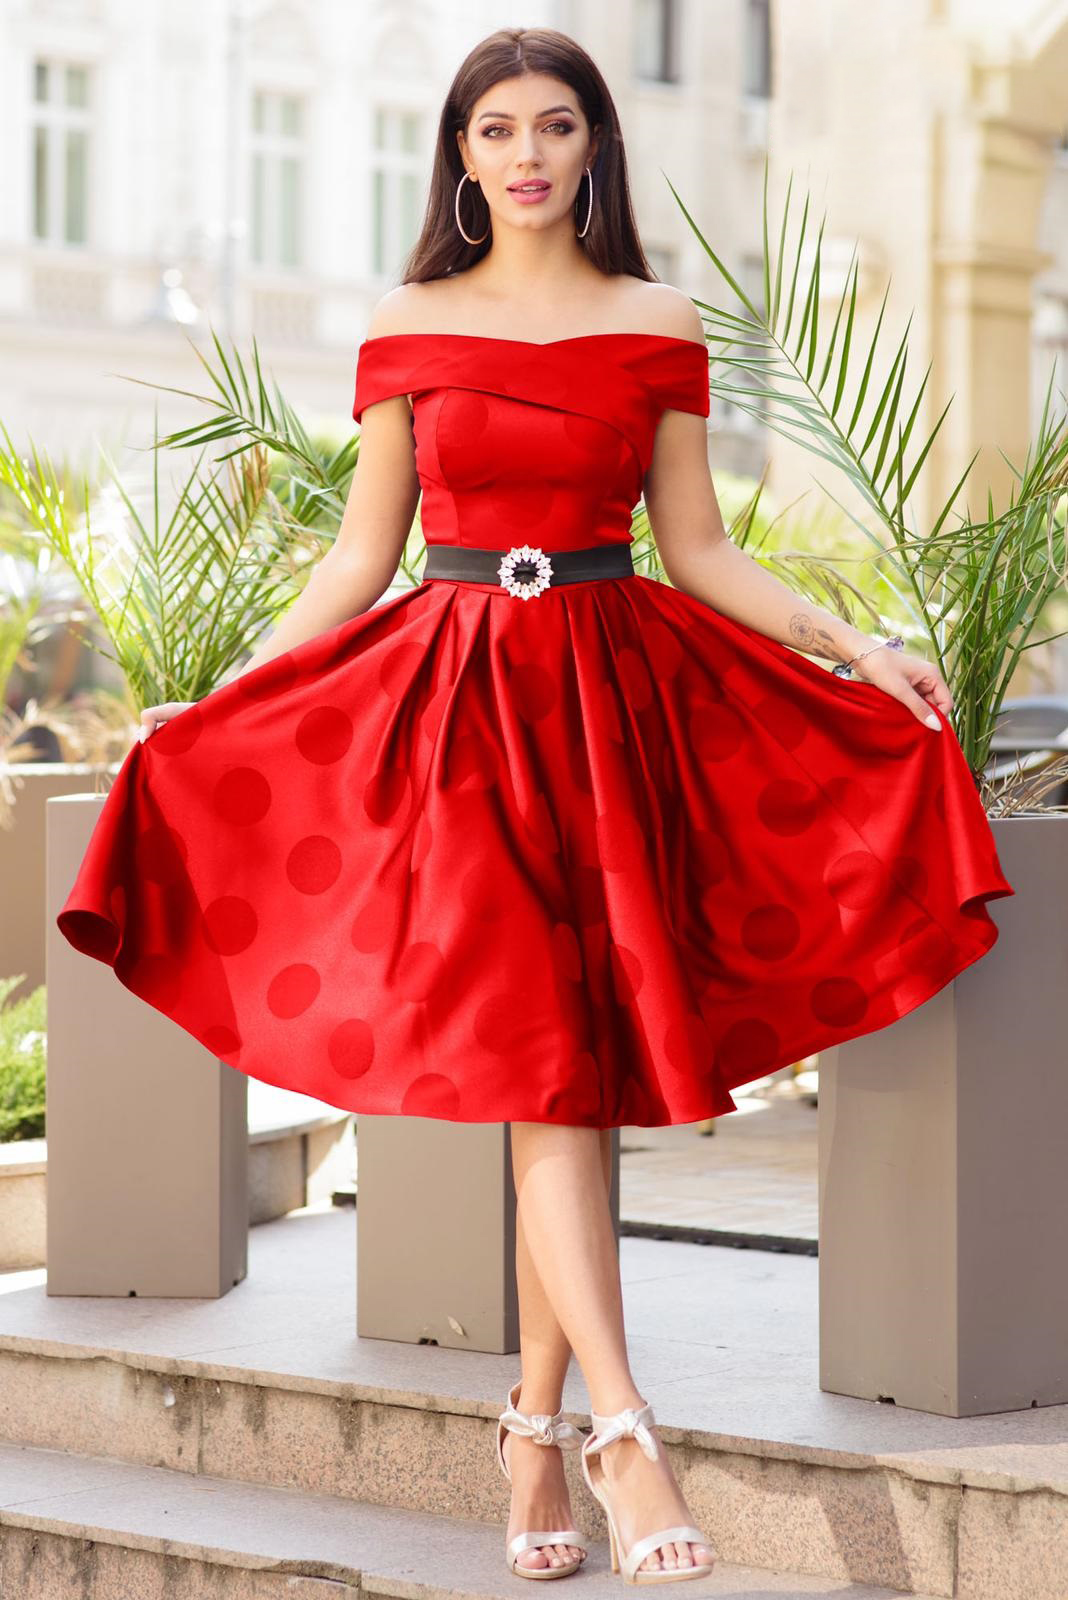 Red dress occasional midi cloche from satin fabric texture naked shoulders dots print